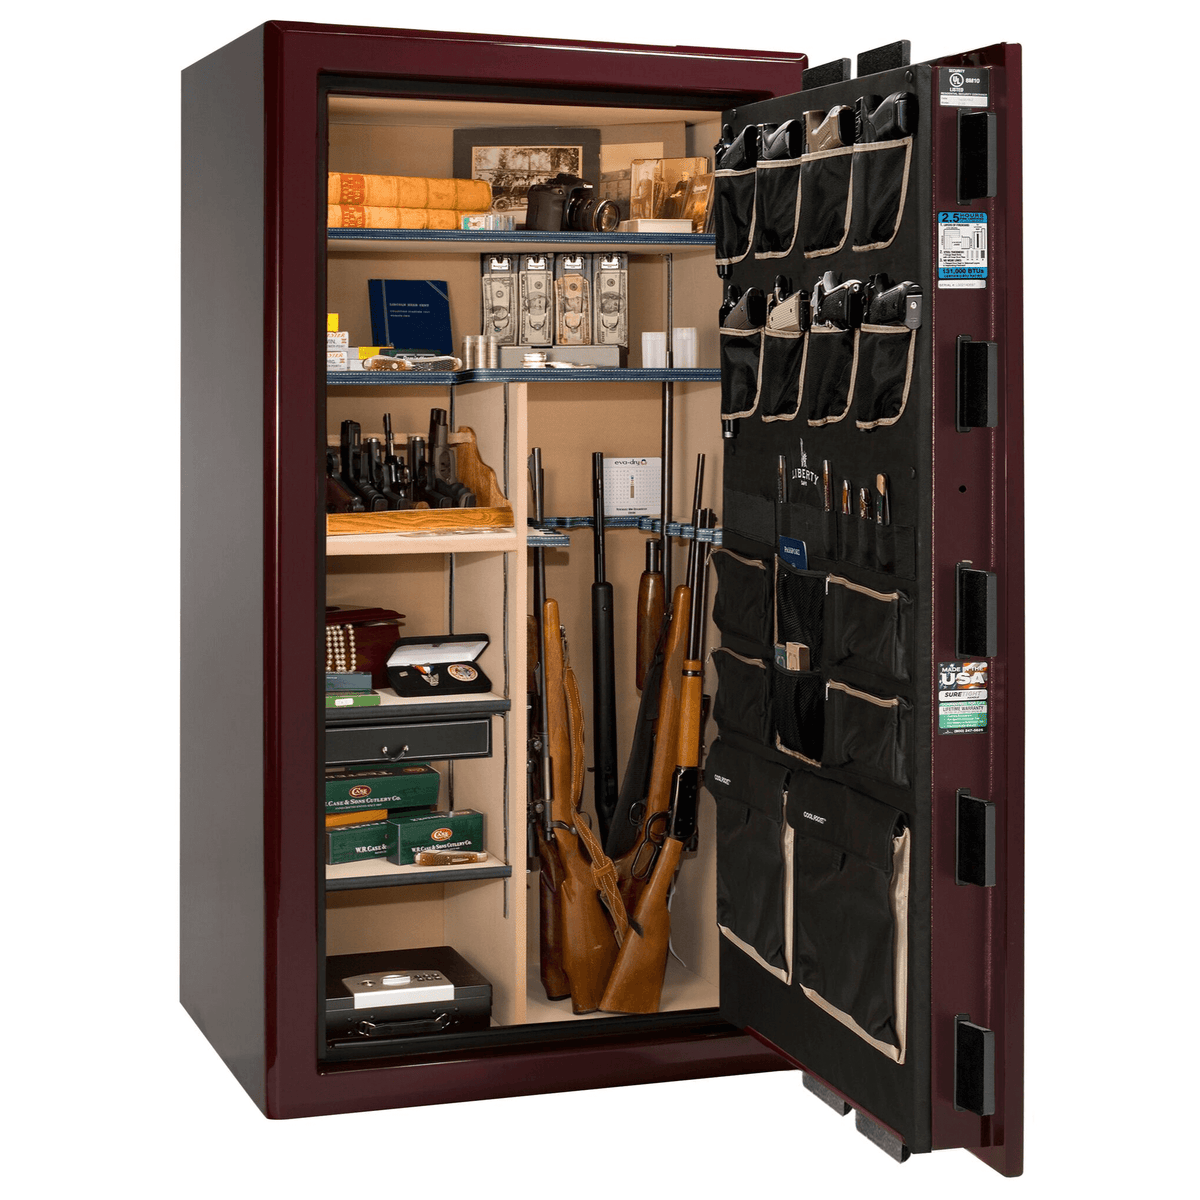 "Presidential | 40 | Level 8 Security | 150 Minute Fire Protection | Burgundy Gloss | Brass Electronic Lock | 65.5""(H) x 36""(W) x 32""(D)"